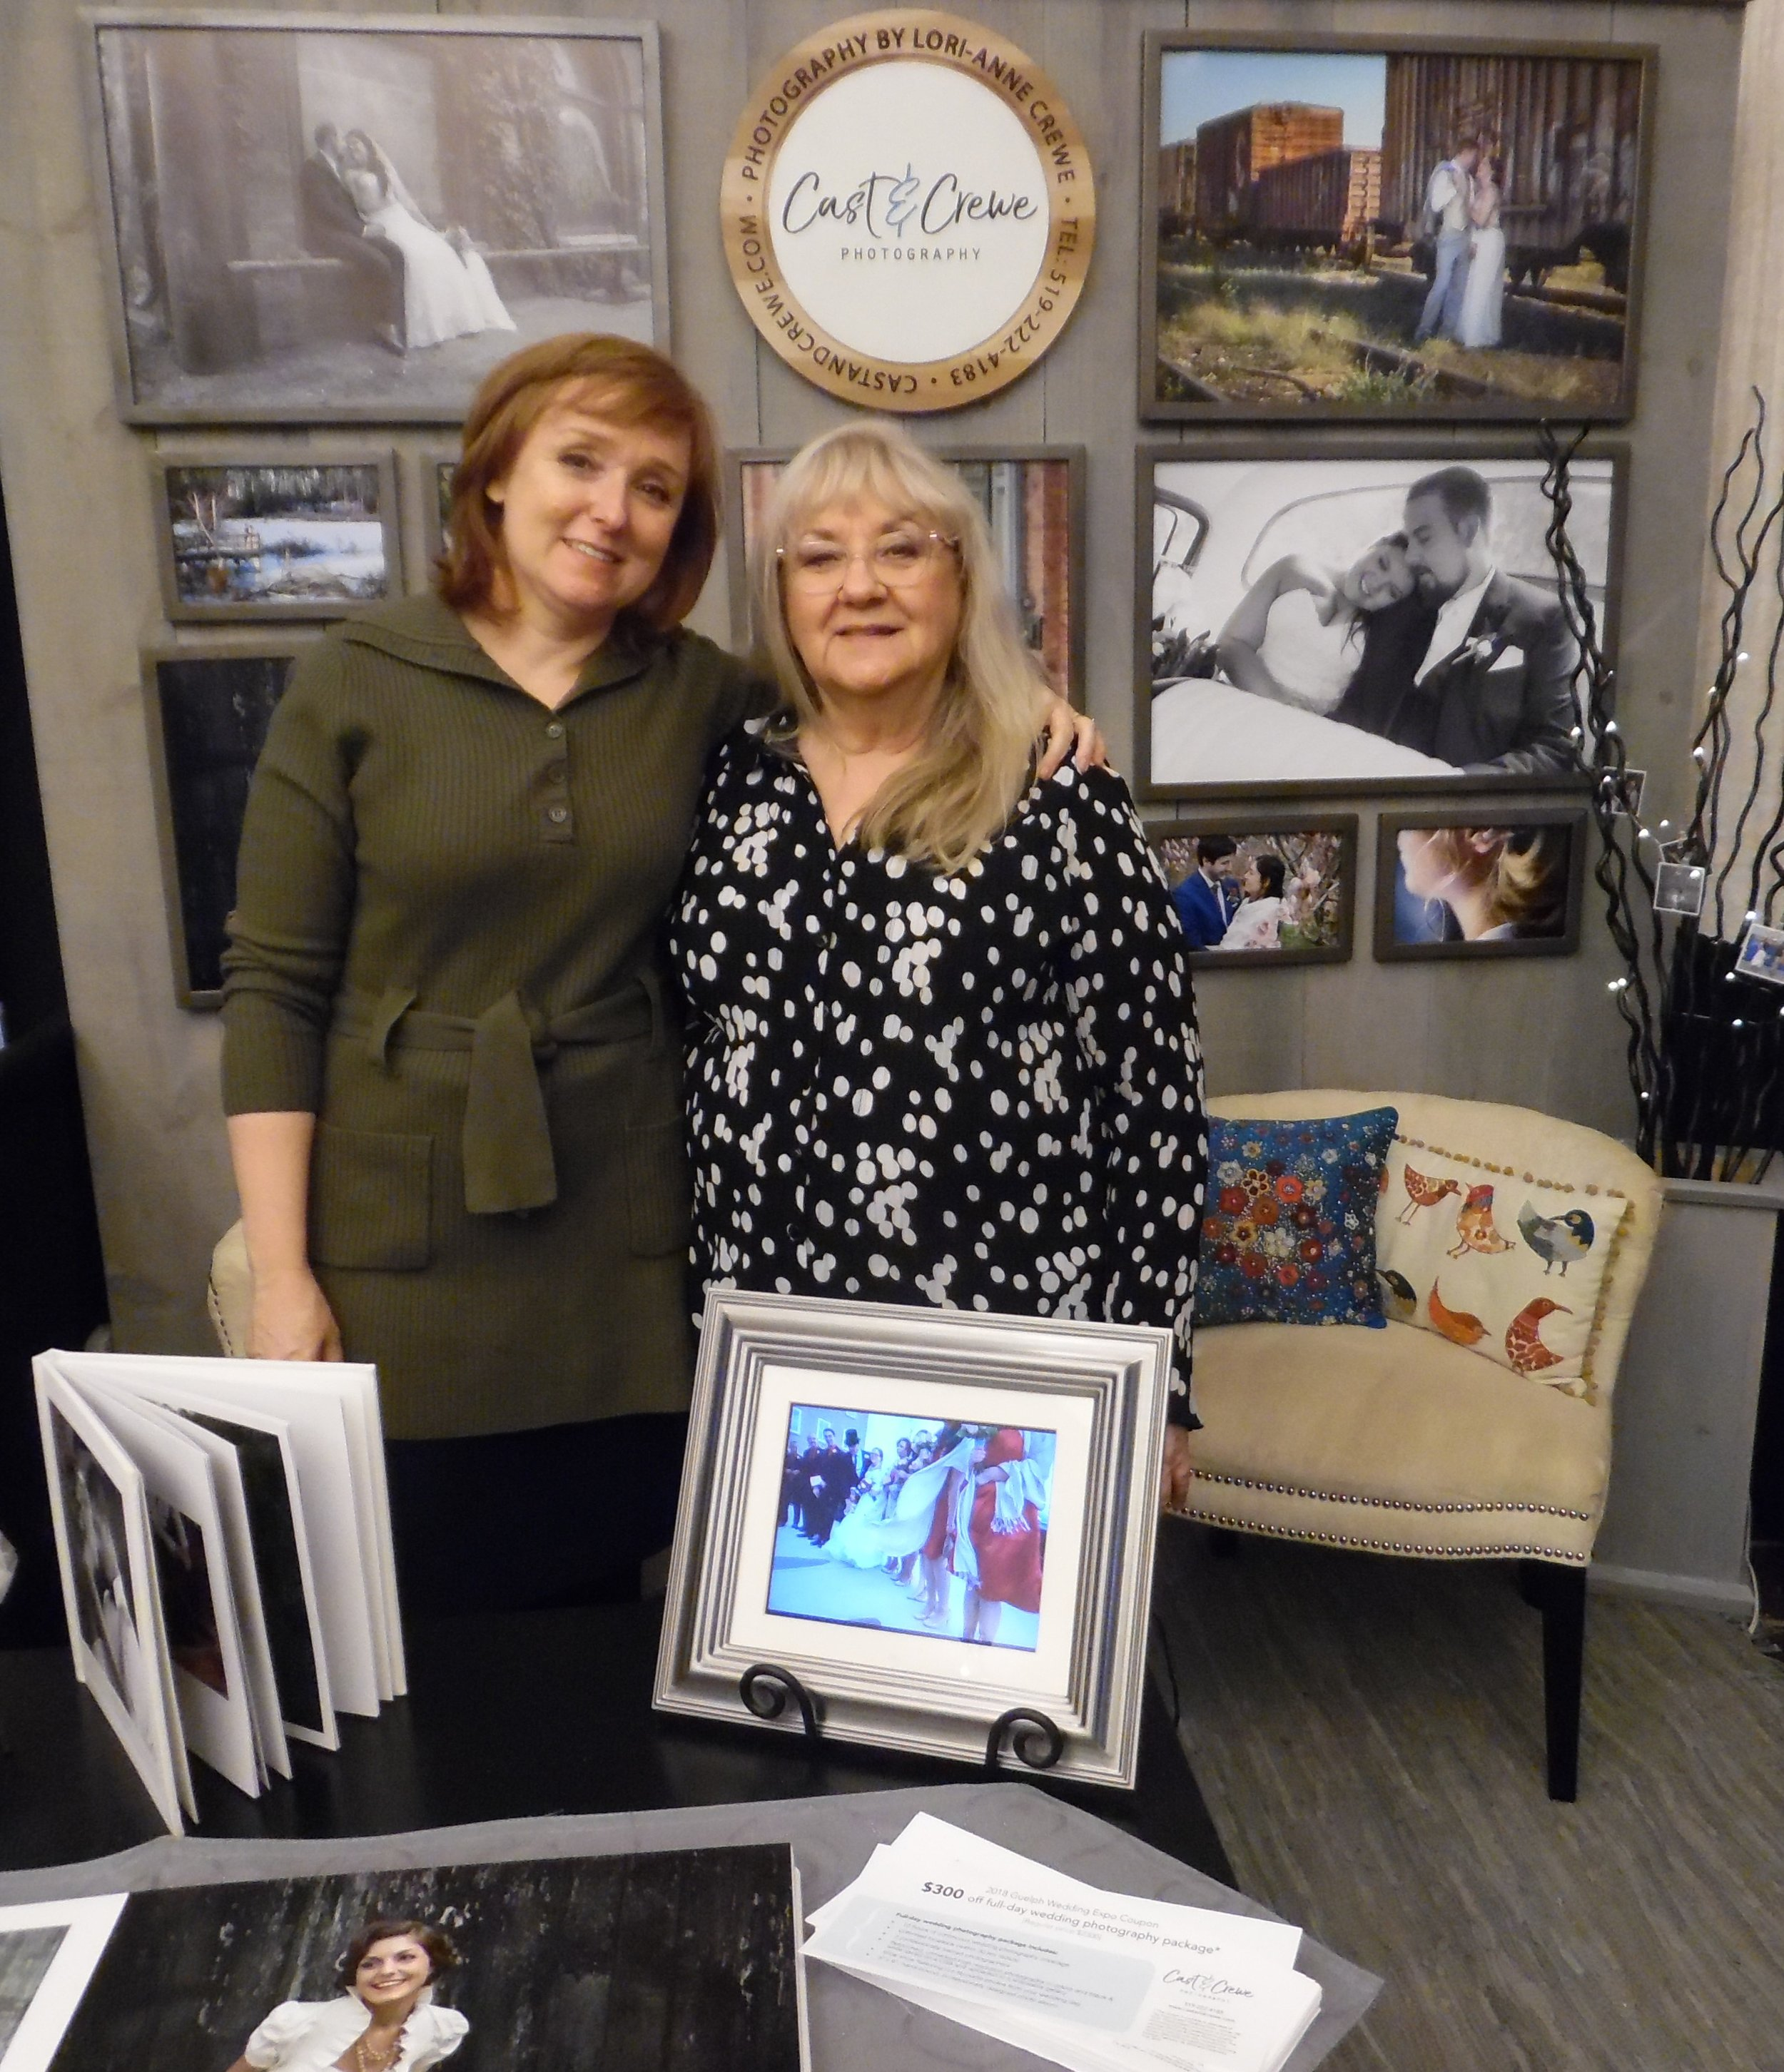 Road trip: Carolyn MacArthur, Editor, SIDEBURNS Magazine, drops by to visit Lori-Anne Crewe's photography display at  The Ring .